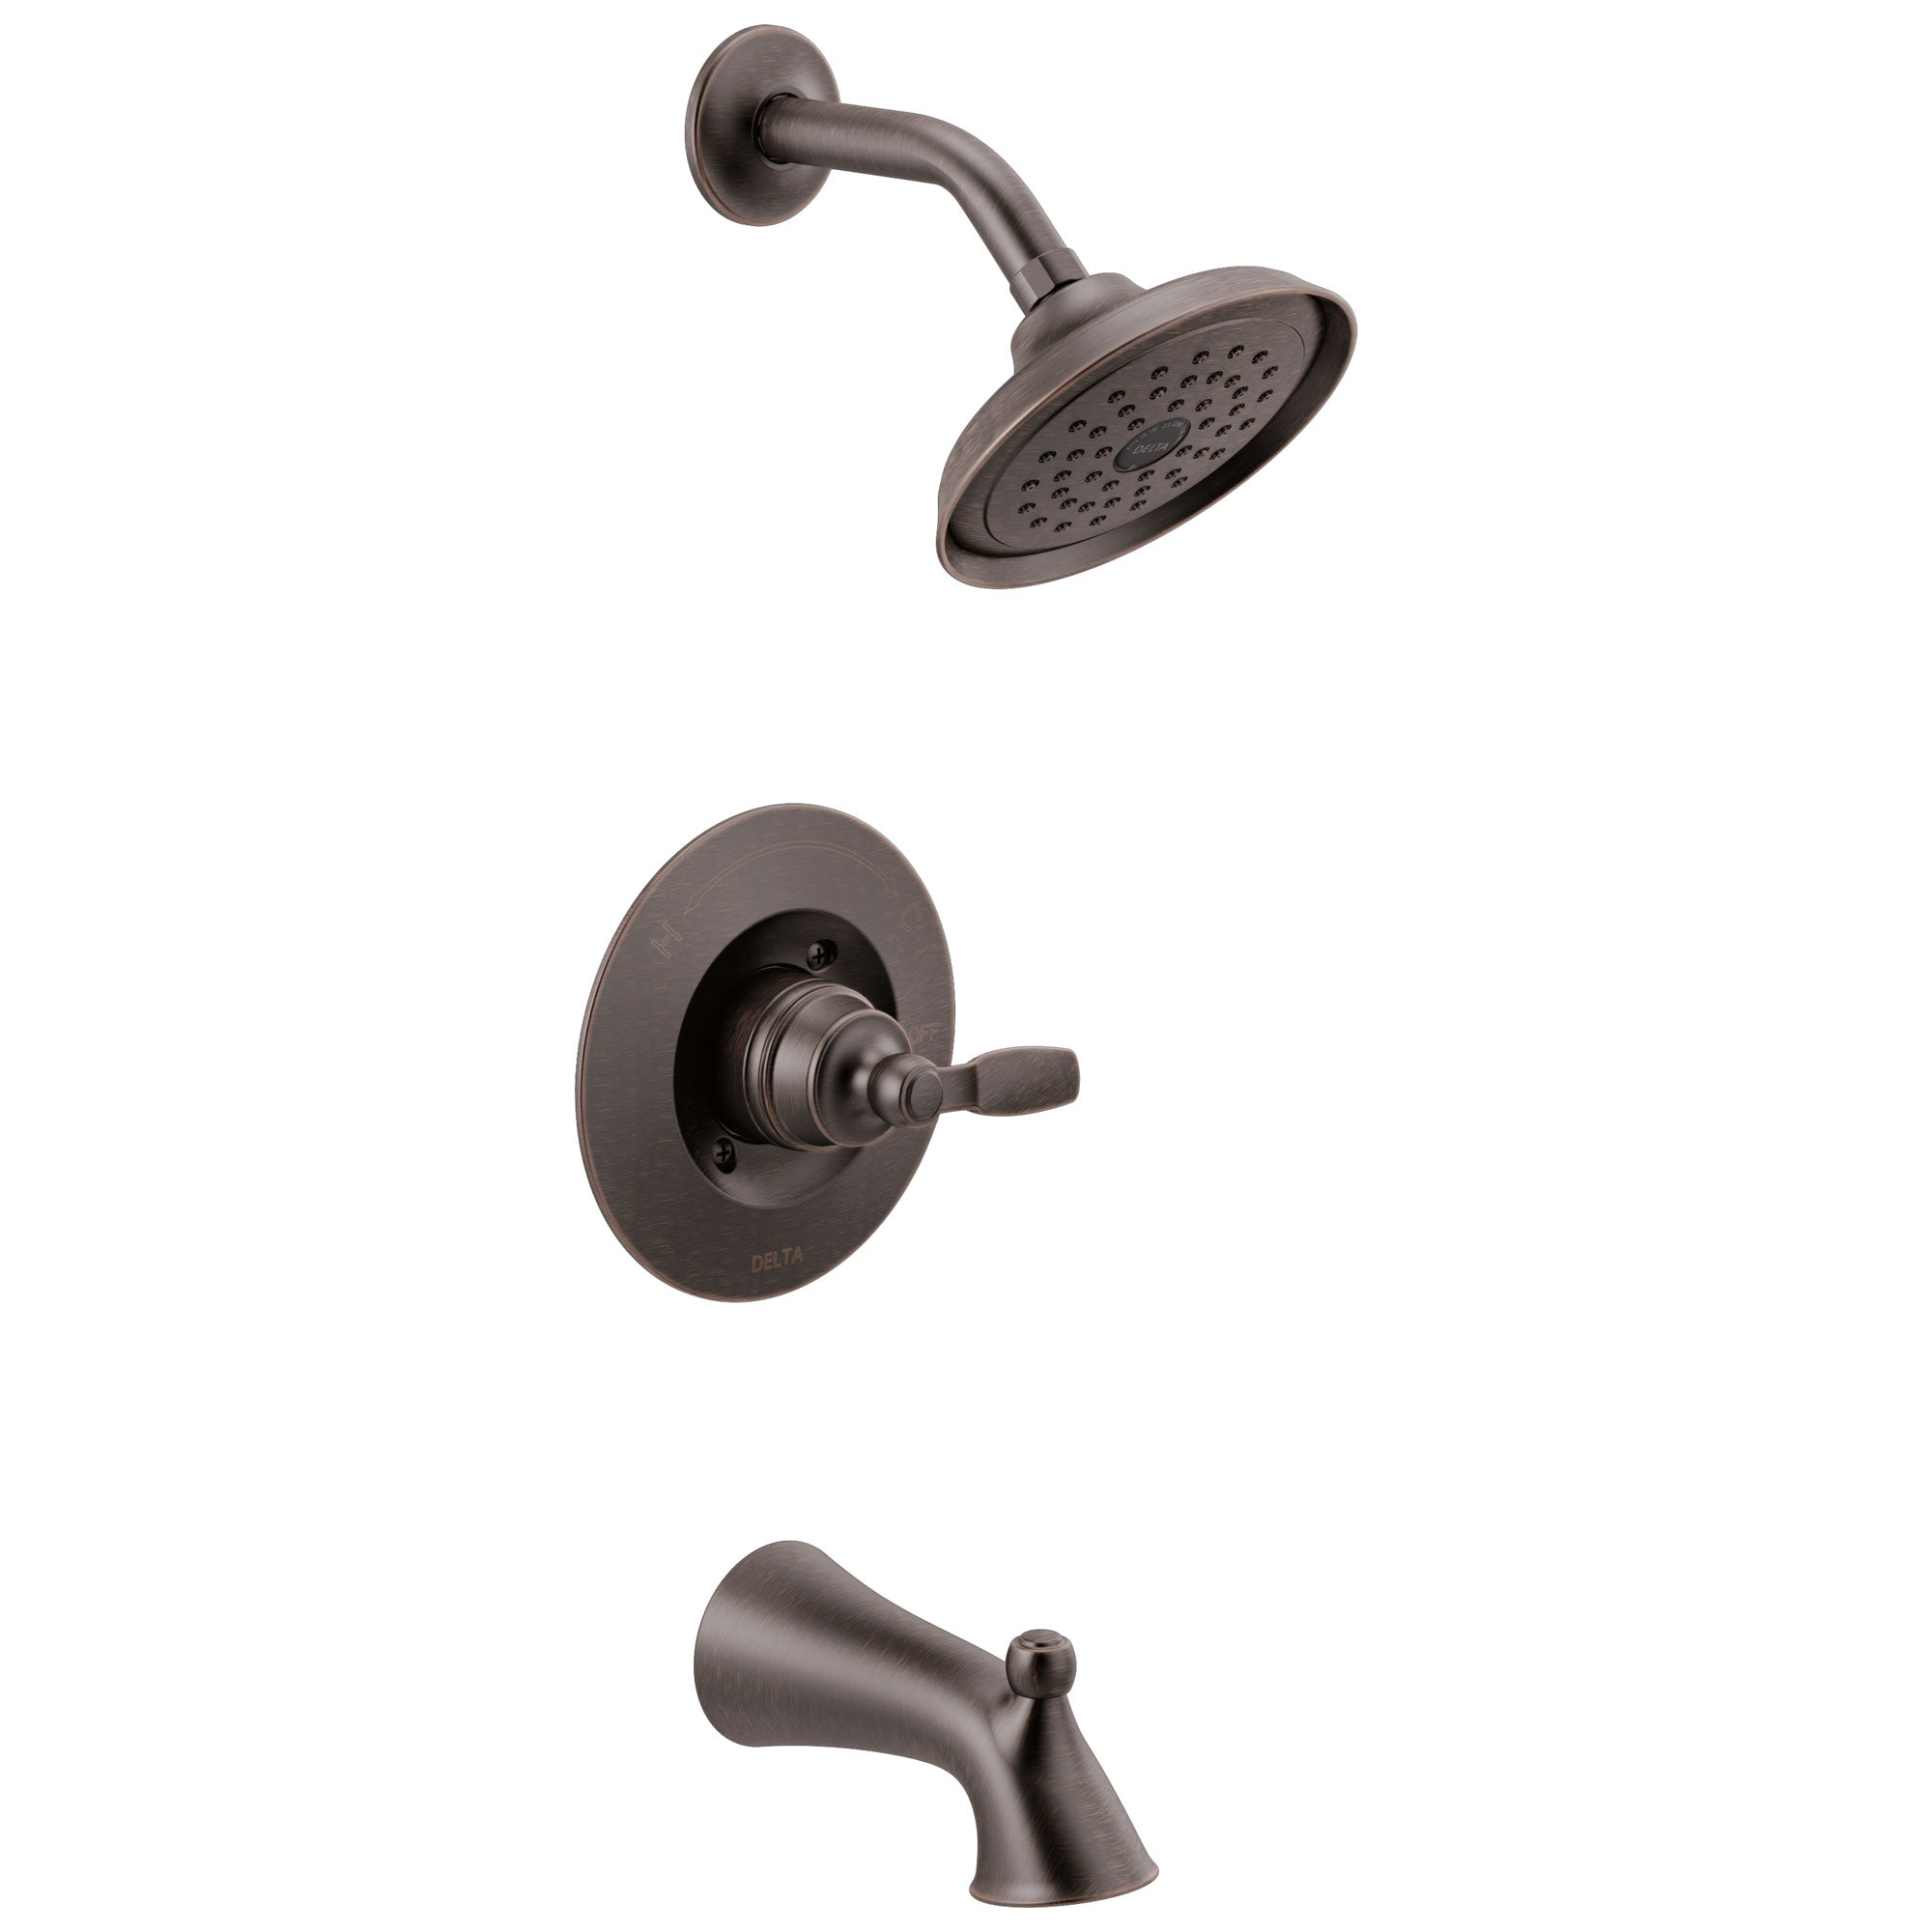 Delta Woodhurst Venetian Bronze Finish Single Lever Handle Tub/Shower Combination Faucet Includes Cartridge, and Valve without Stops D3467V